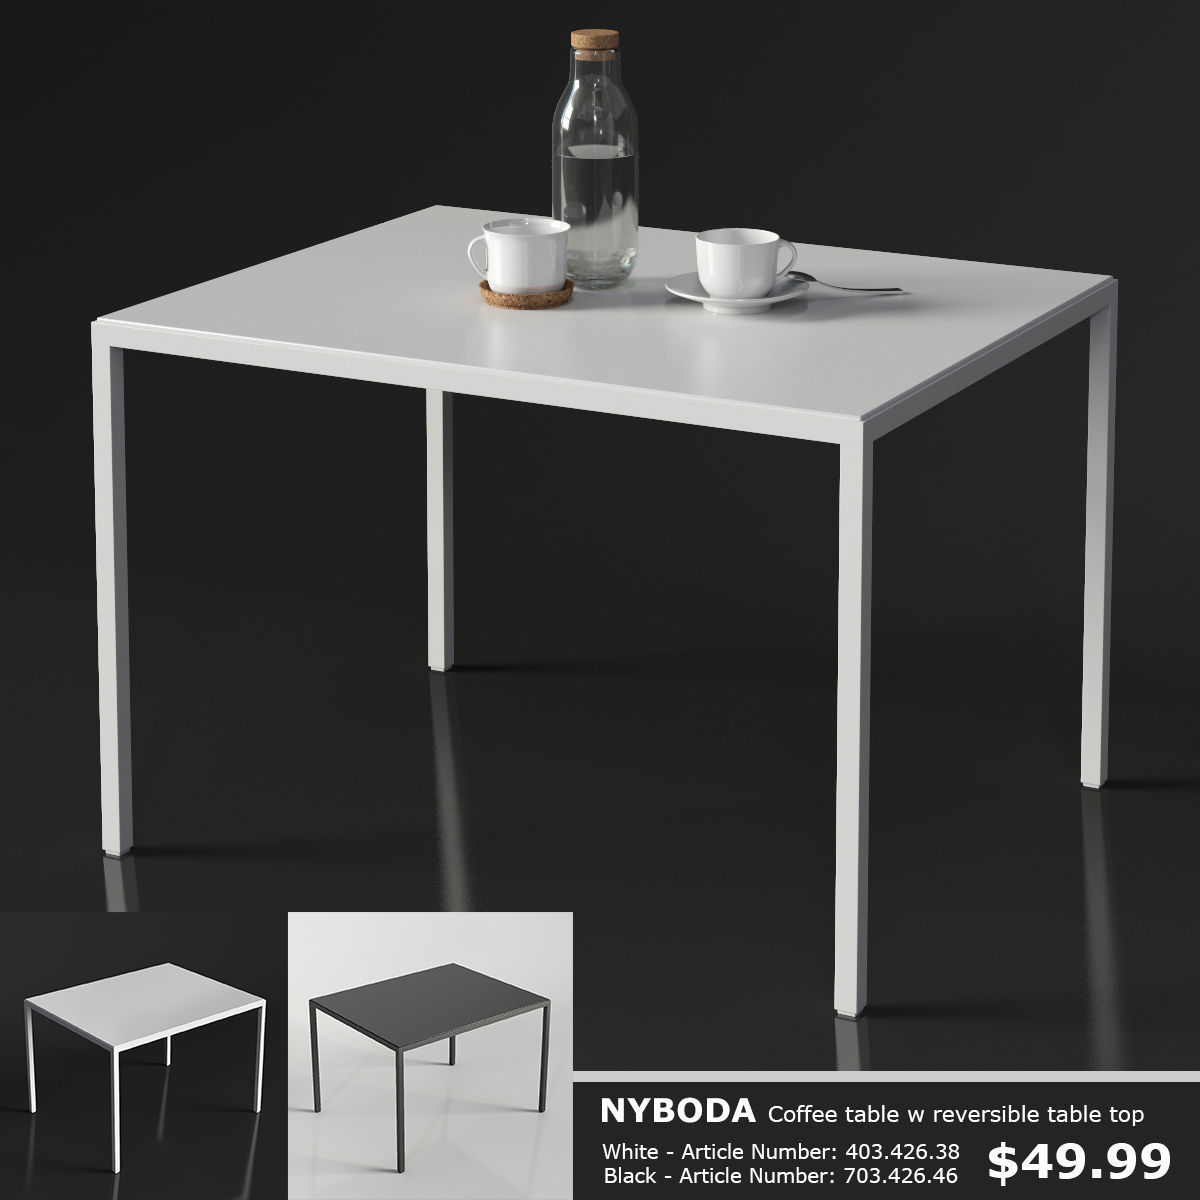 Ikea Nyboda Coffee Table 3d Model Max Obj 3ds Fbx Mtl Mat 1